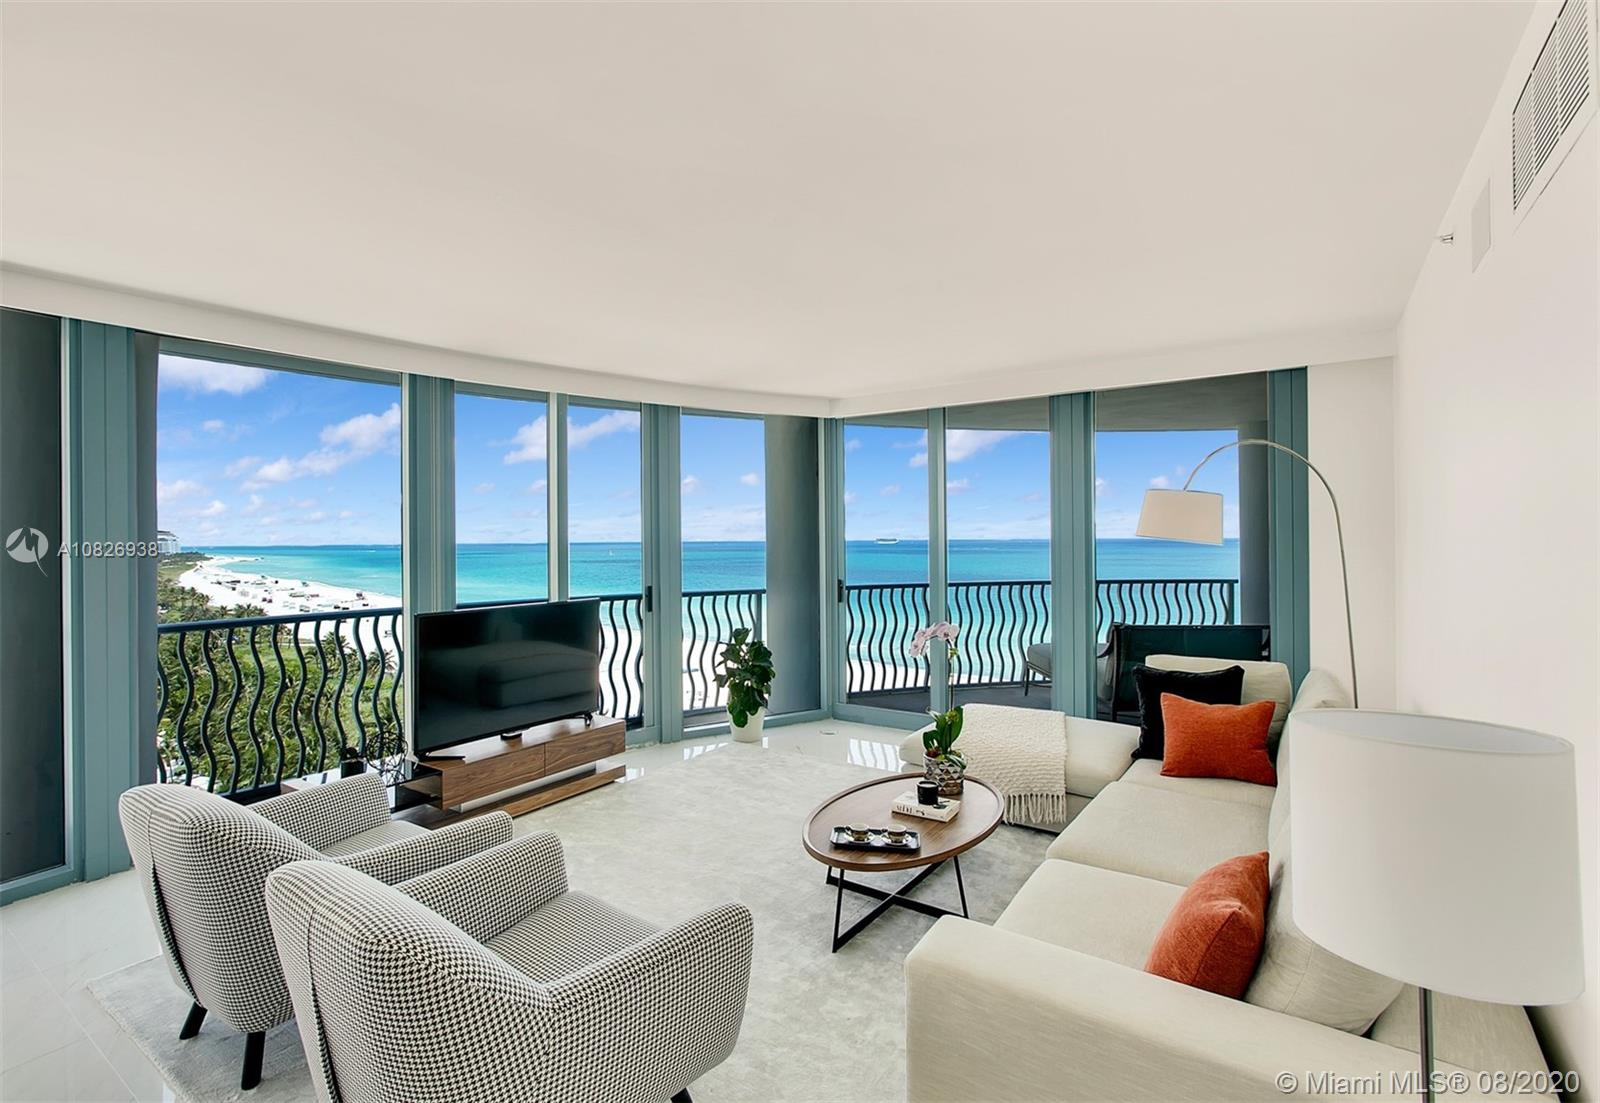 Direct Ocean beauty! Best exposure, corner residence & floor plan at the boutique Oceanfront Michael Graves with luxurious amenities including beach services, newly renovated spa/gym and pool, 24 hours security & valet. Walking distance to all the excitement in South Beach, generous terraces, fantastic floor plan and uninterrupted ocean views. Over 2300 sq. ft, 3 Beds + Den, 3.5 Baths and 2 parking spaces. New contemporary renovation, superb upgrades with exquisite décor and friendly services & atmosphere makes this a winner. Come make each day a BEACH DAY! A MASTER BROKER PROPERTY